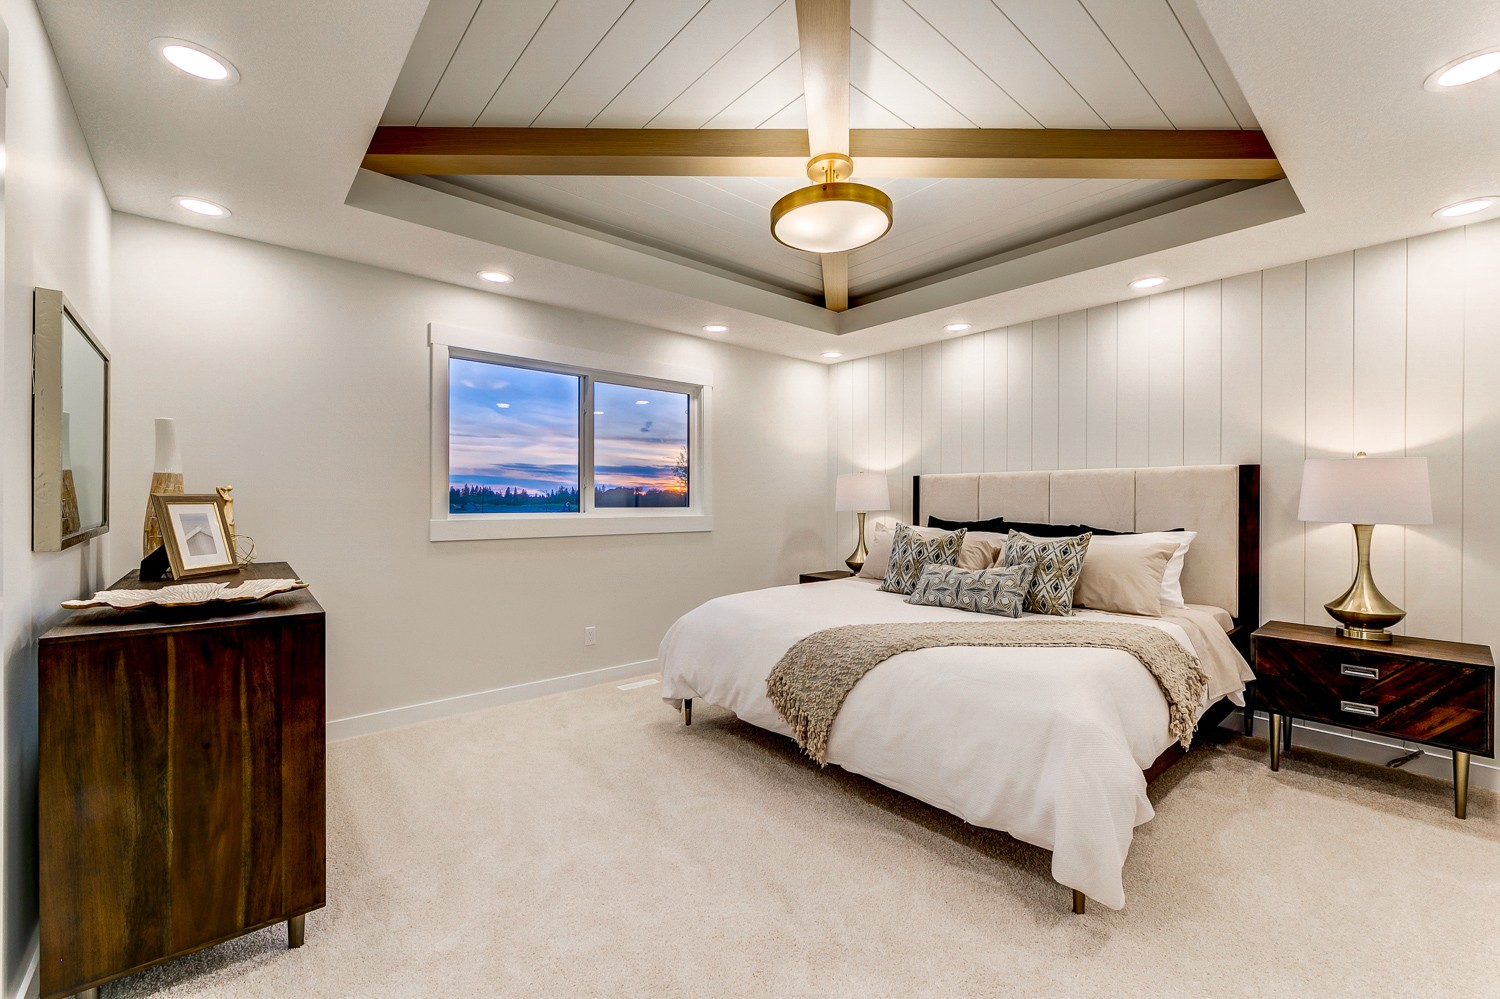 Home by City Homes Master Builder in Kinglet by Big Lake